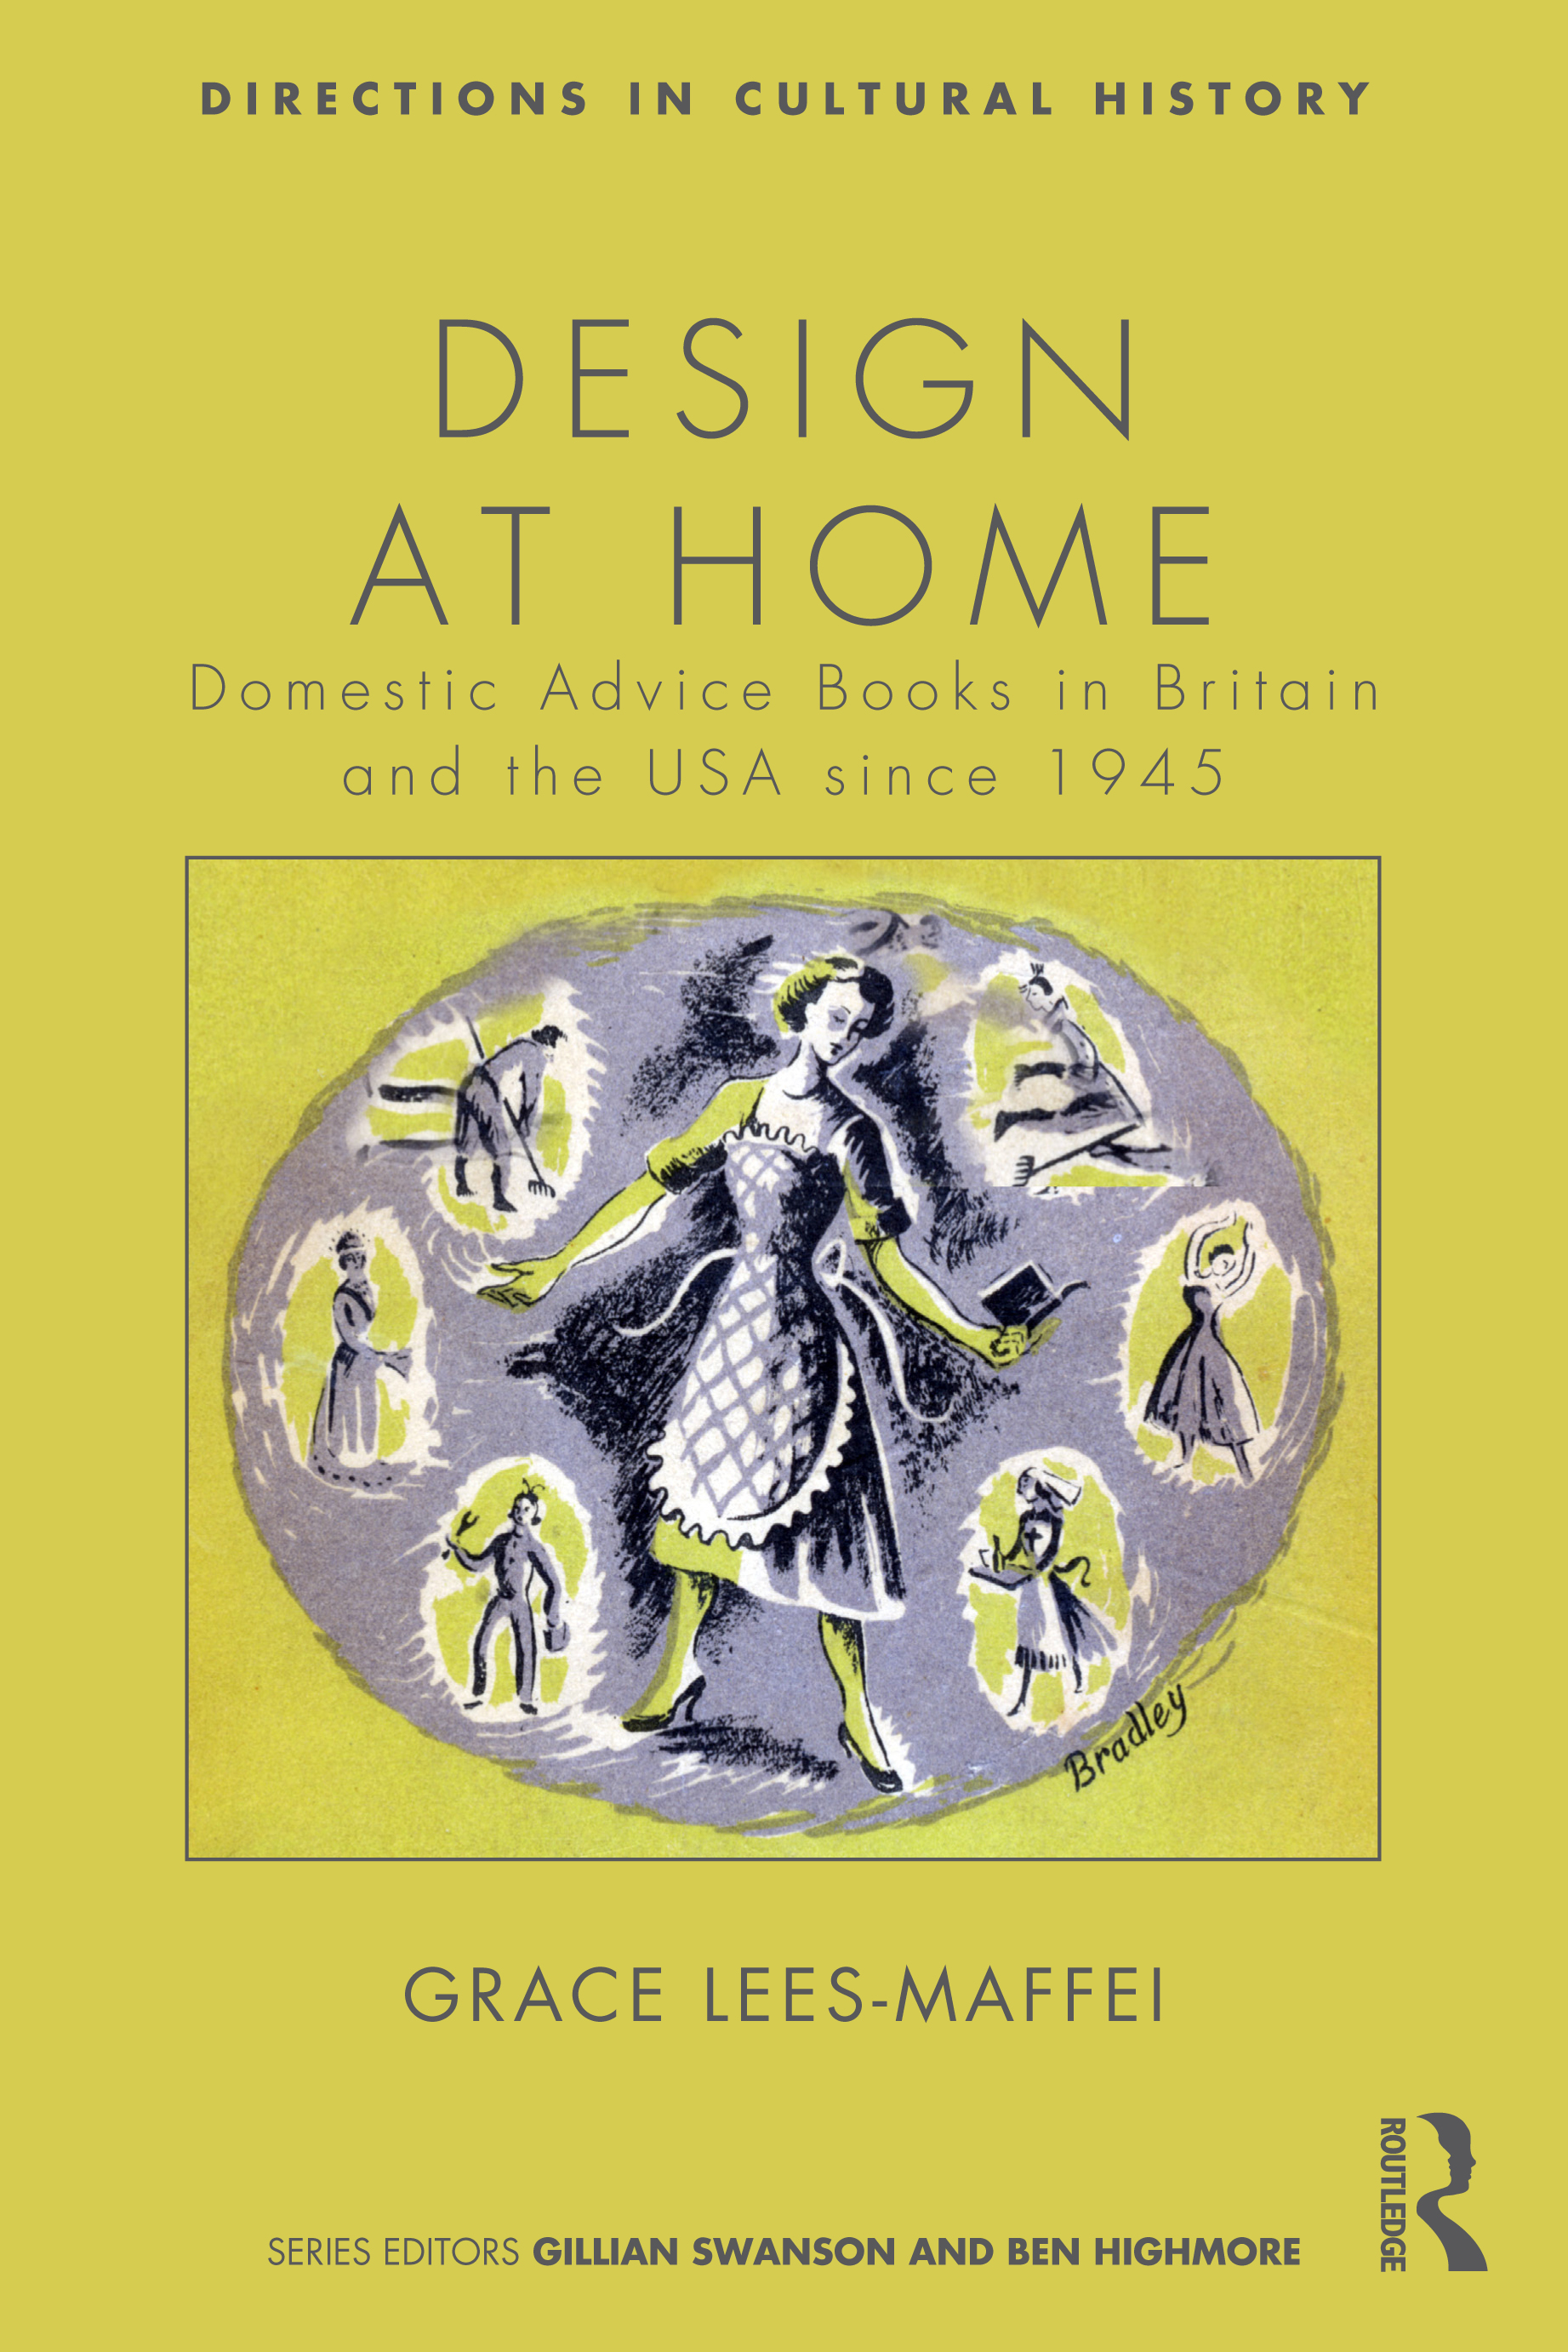 DESIGN_AT_HOME_COVER.jpg